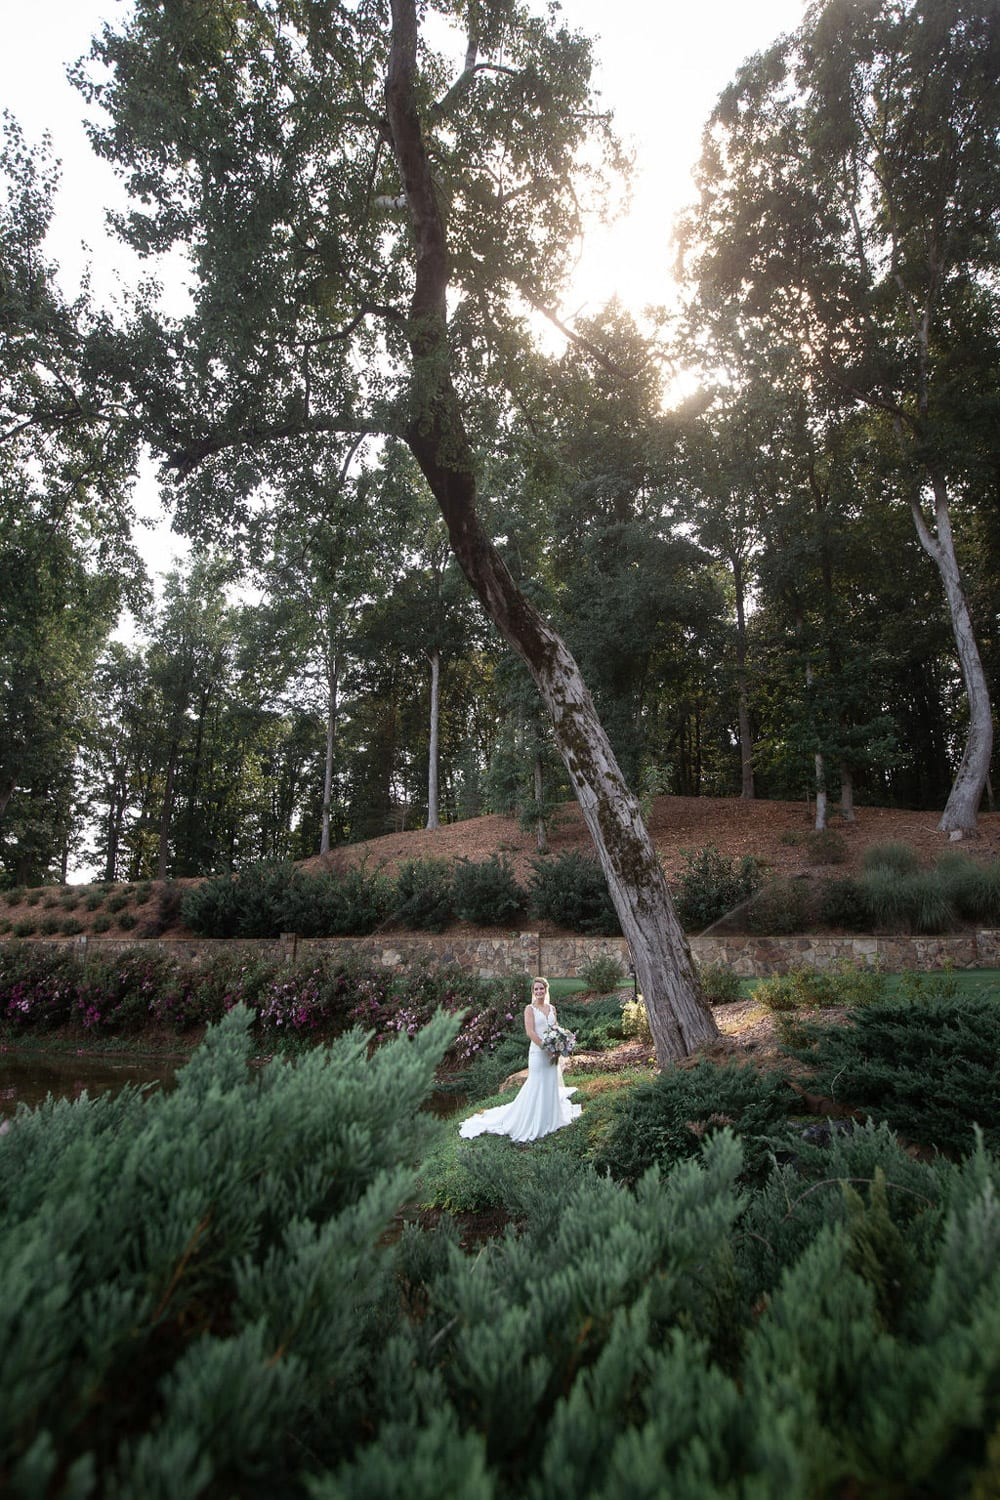 Bride stands by tree with flowers under sunlight